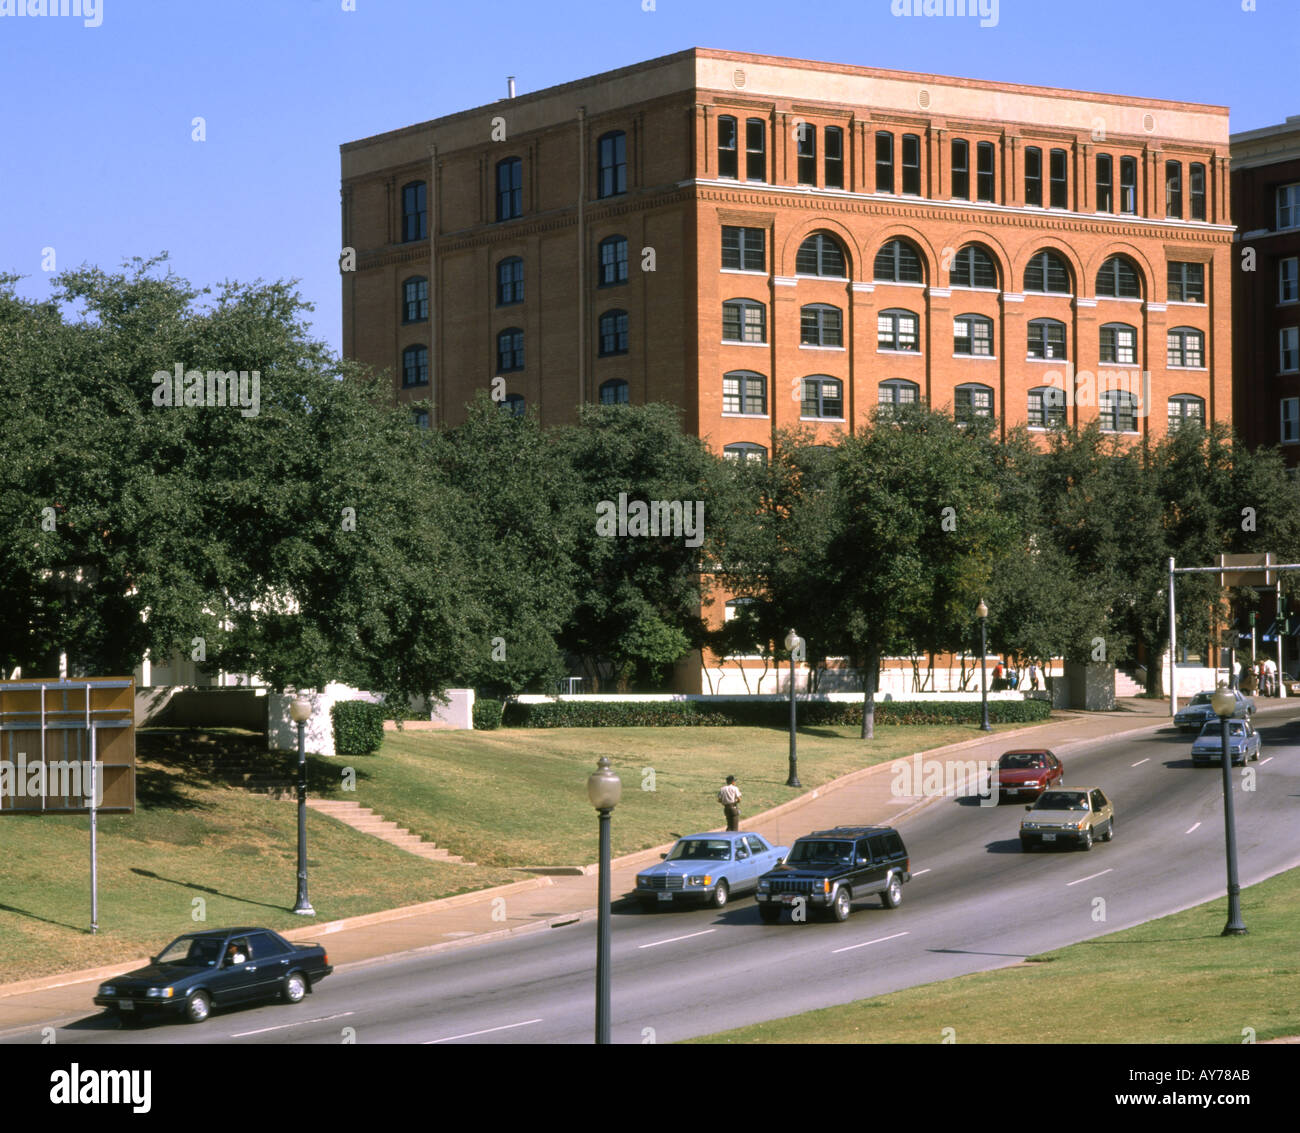 USA Dallas J F Kennedy assassination site - Stock Image